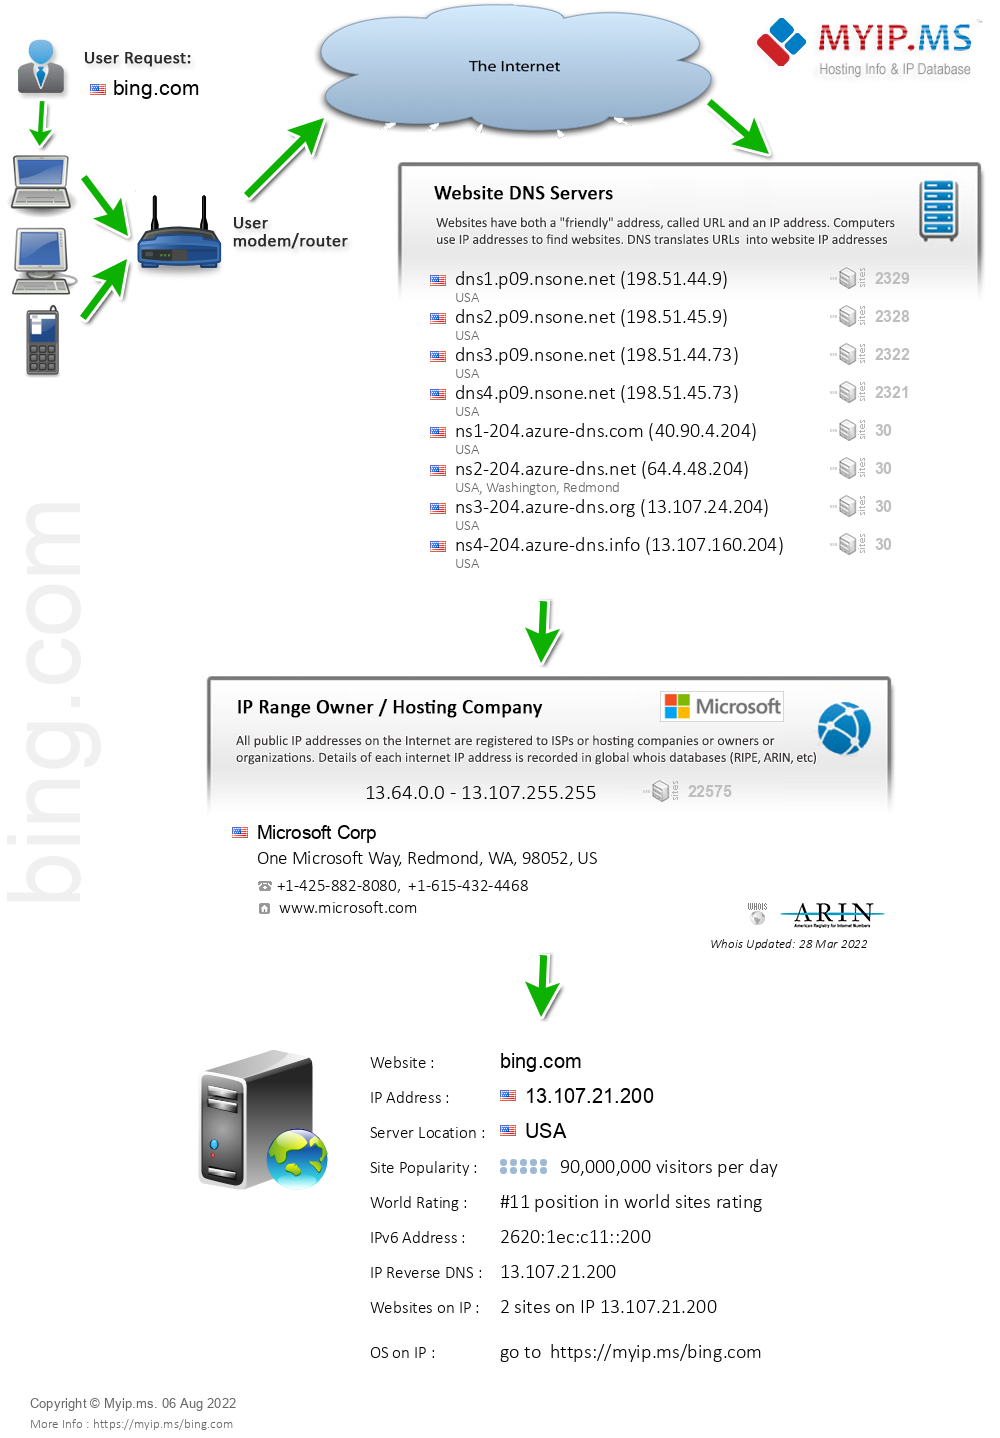 Bing.com - Website Hosting Visual IP Diagram